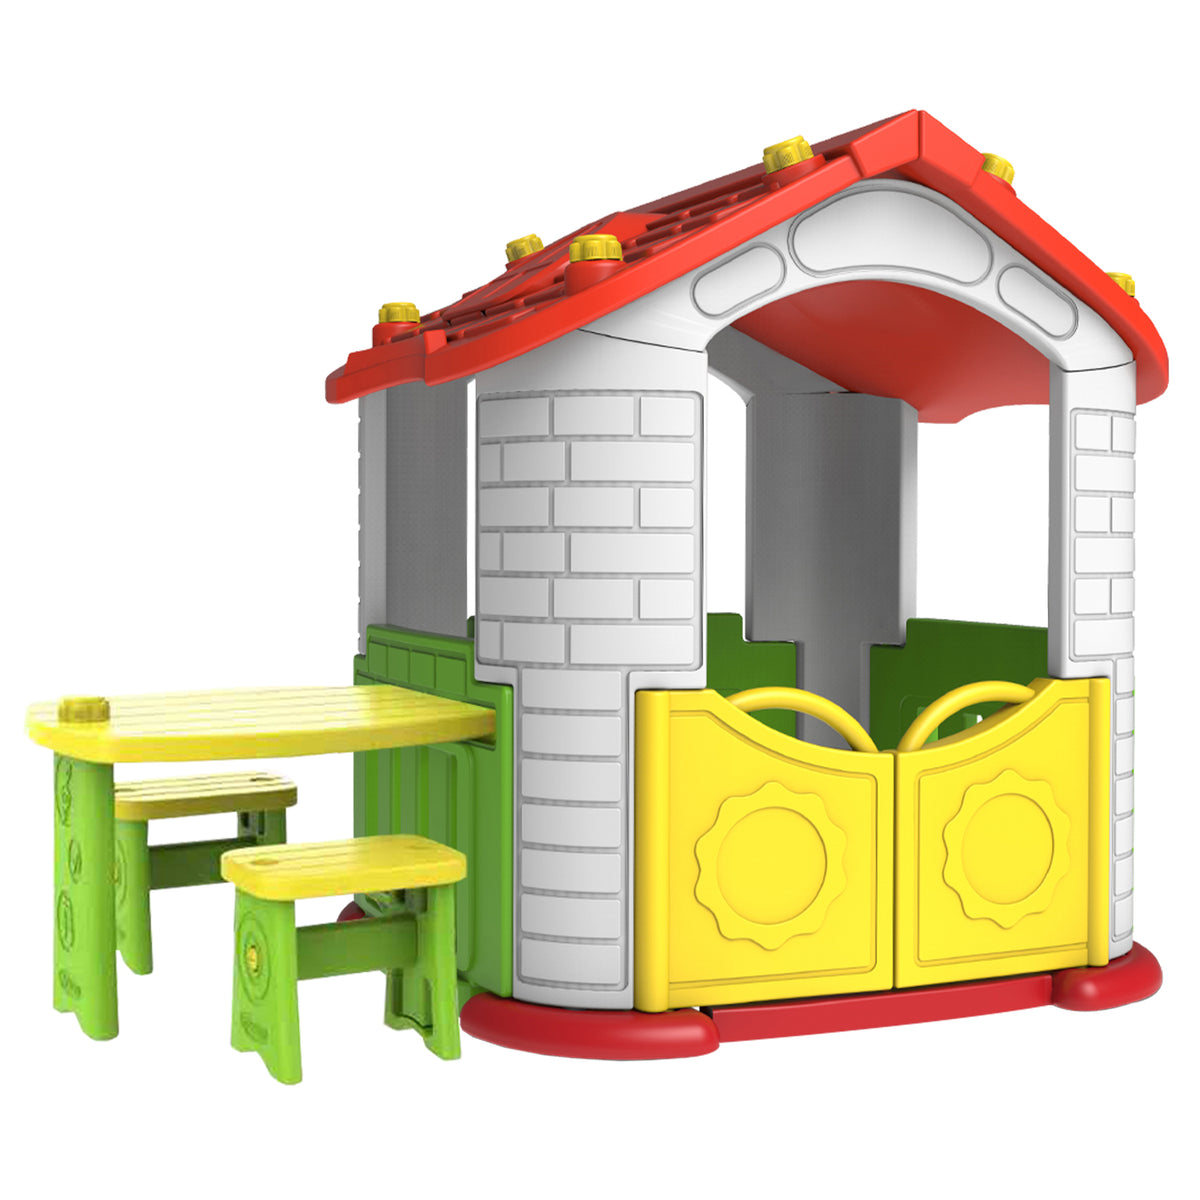 Lifespan Kids Wombat 2 Playhouse